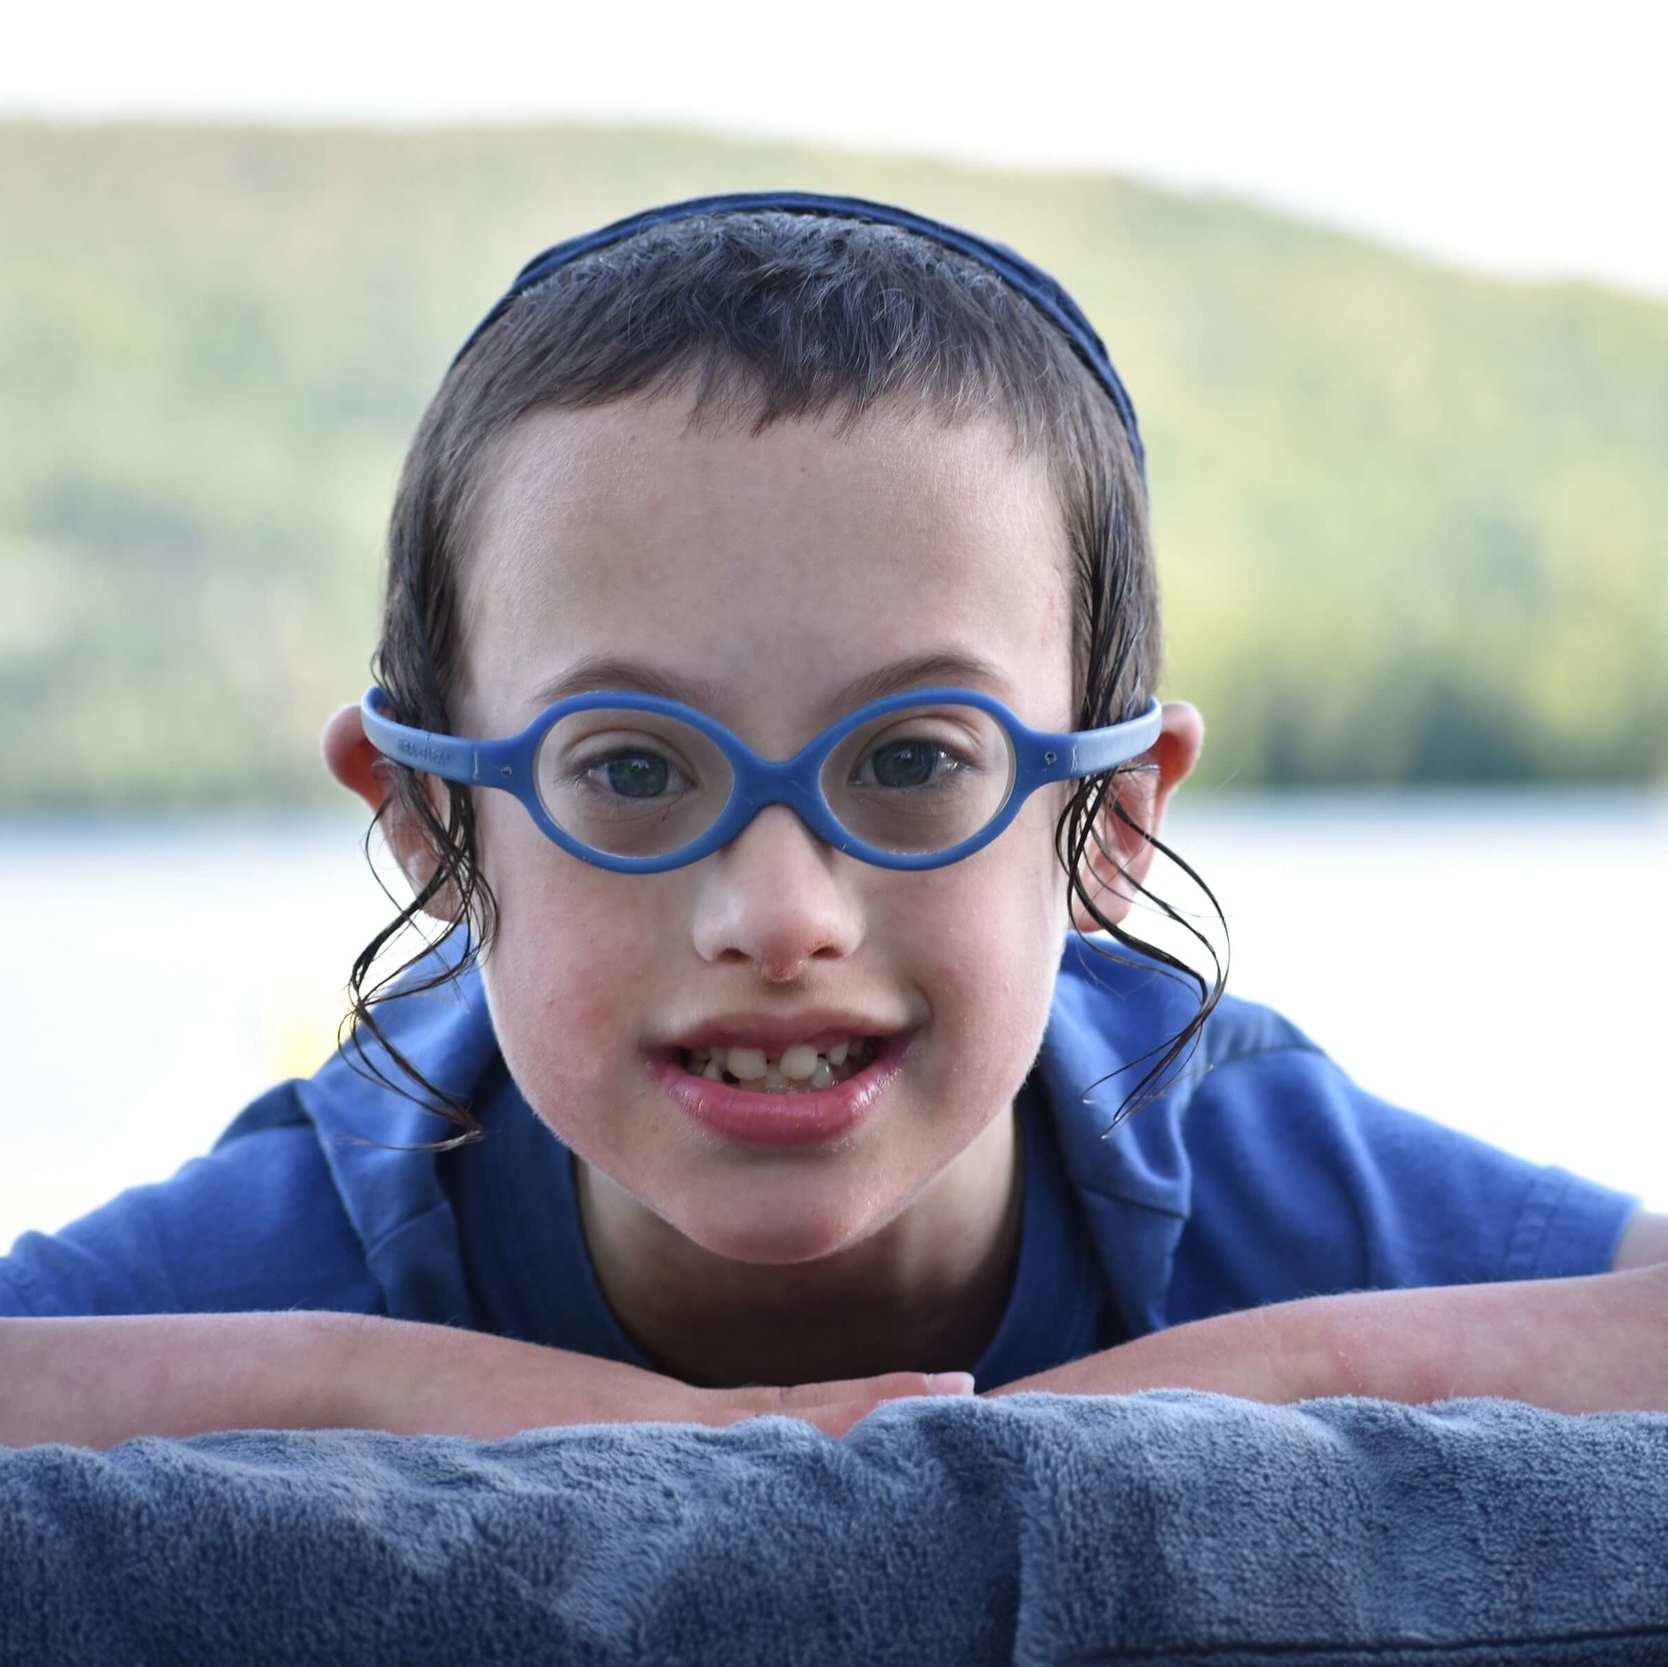 Day Camp - Providing children with special needs a fun and educational experience.